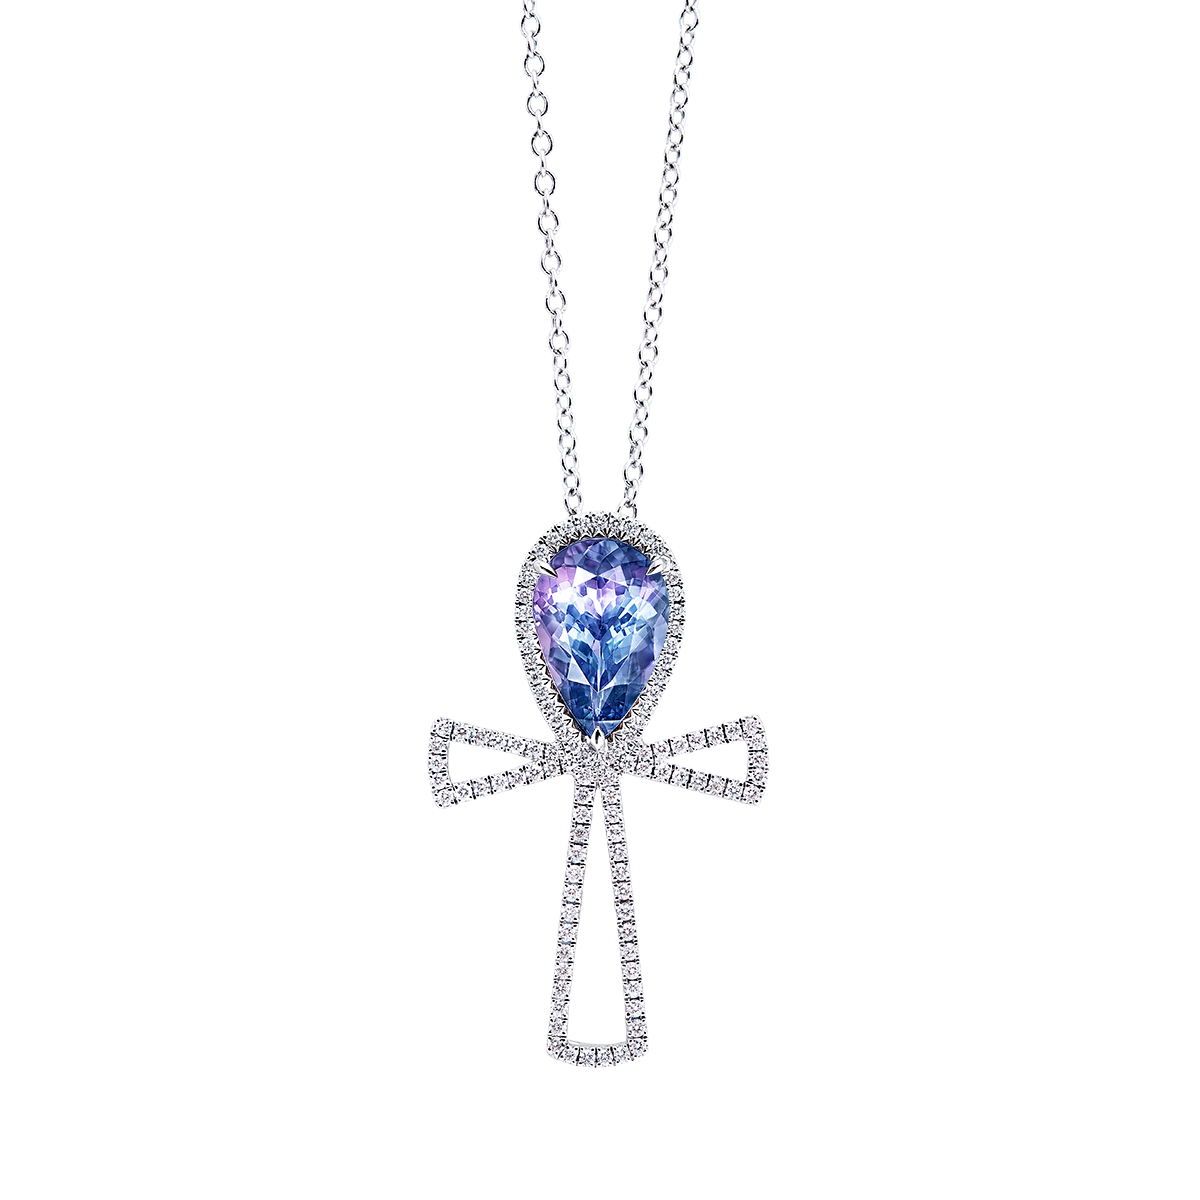 3.37克拉 天然丹泉石鑽石墜鍊